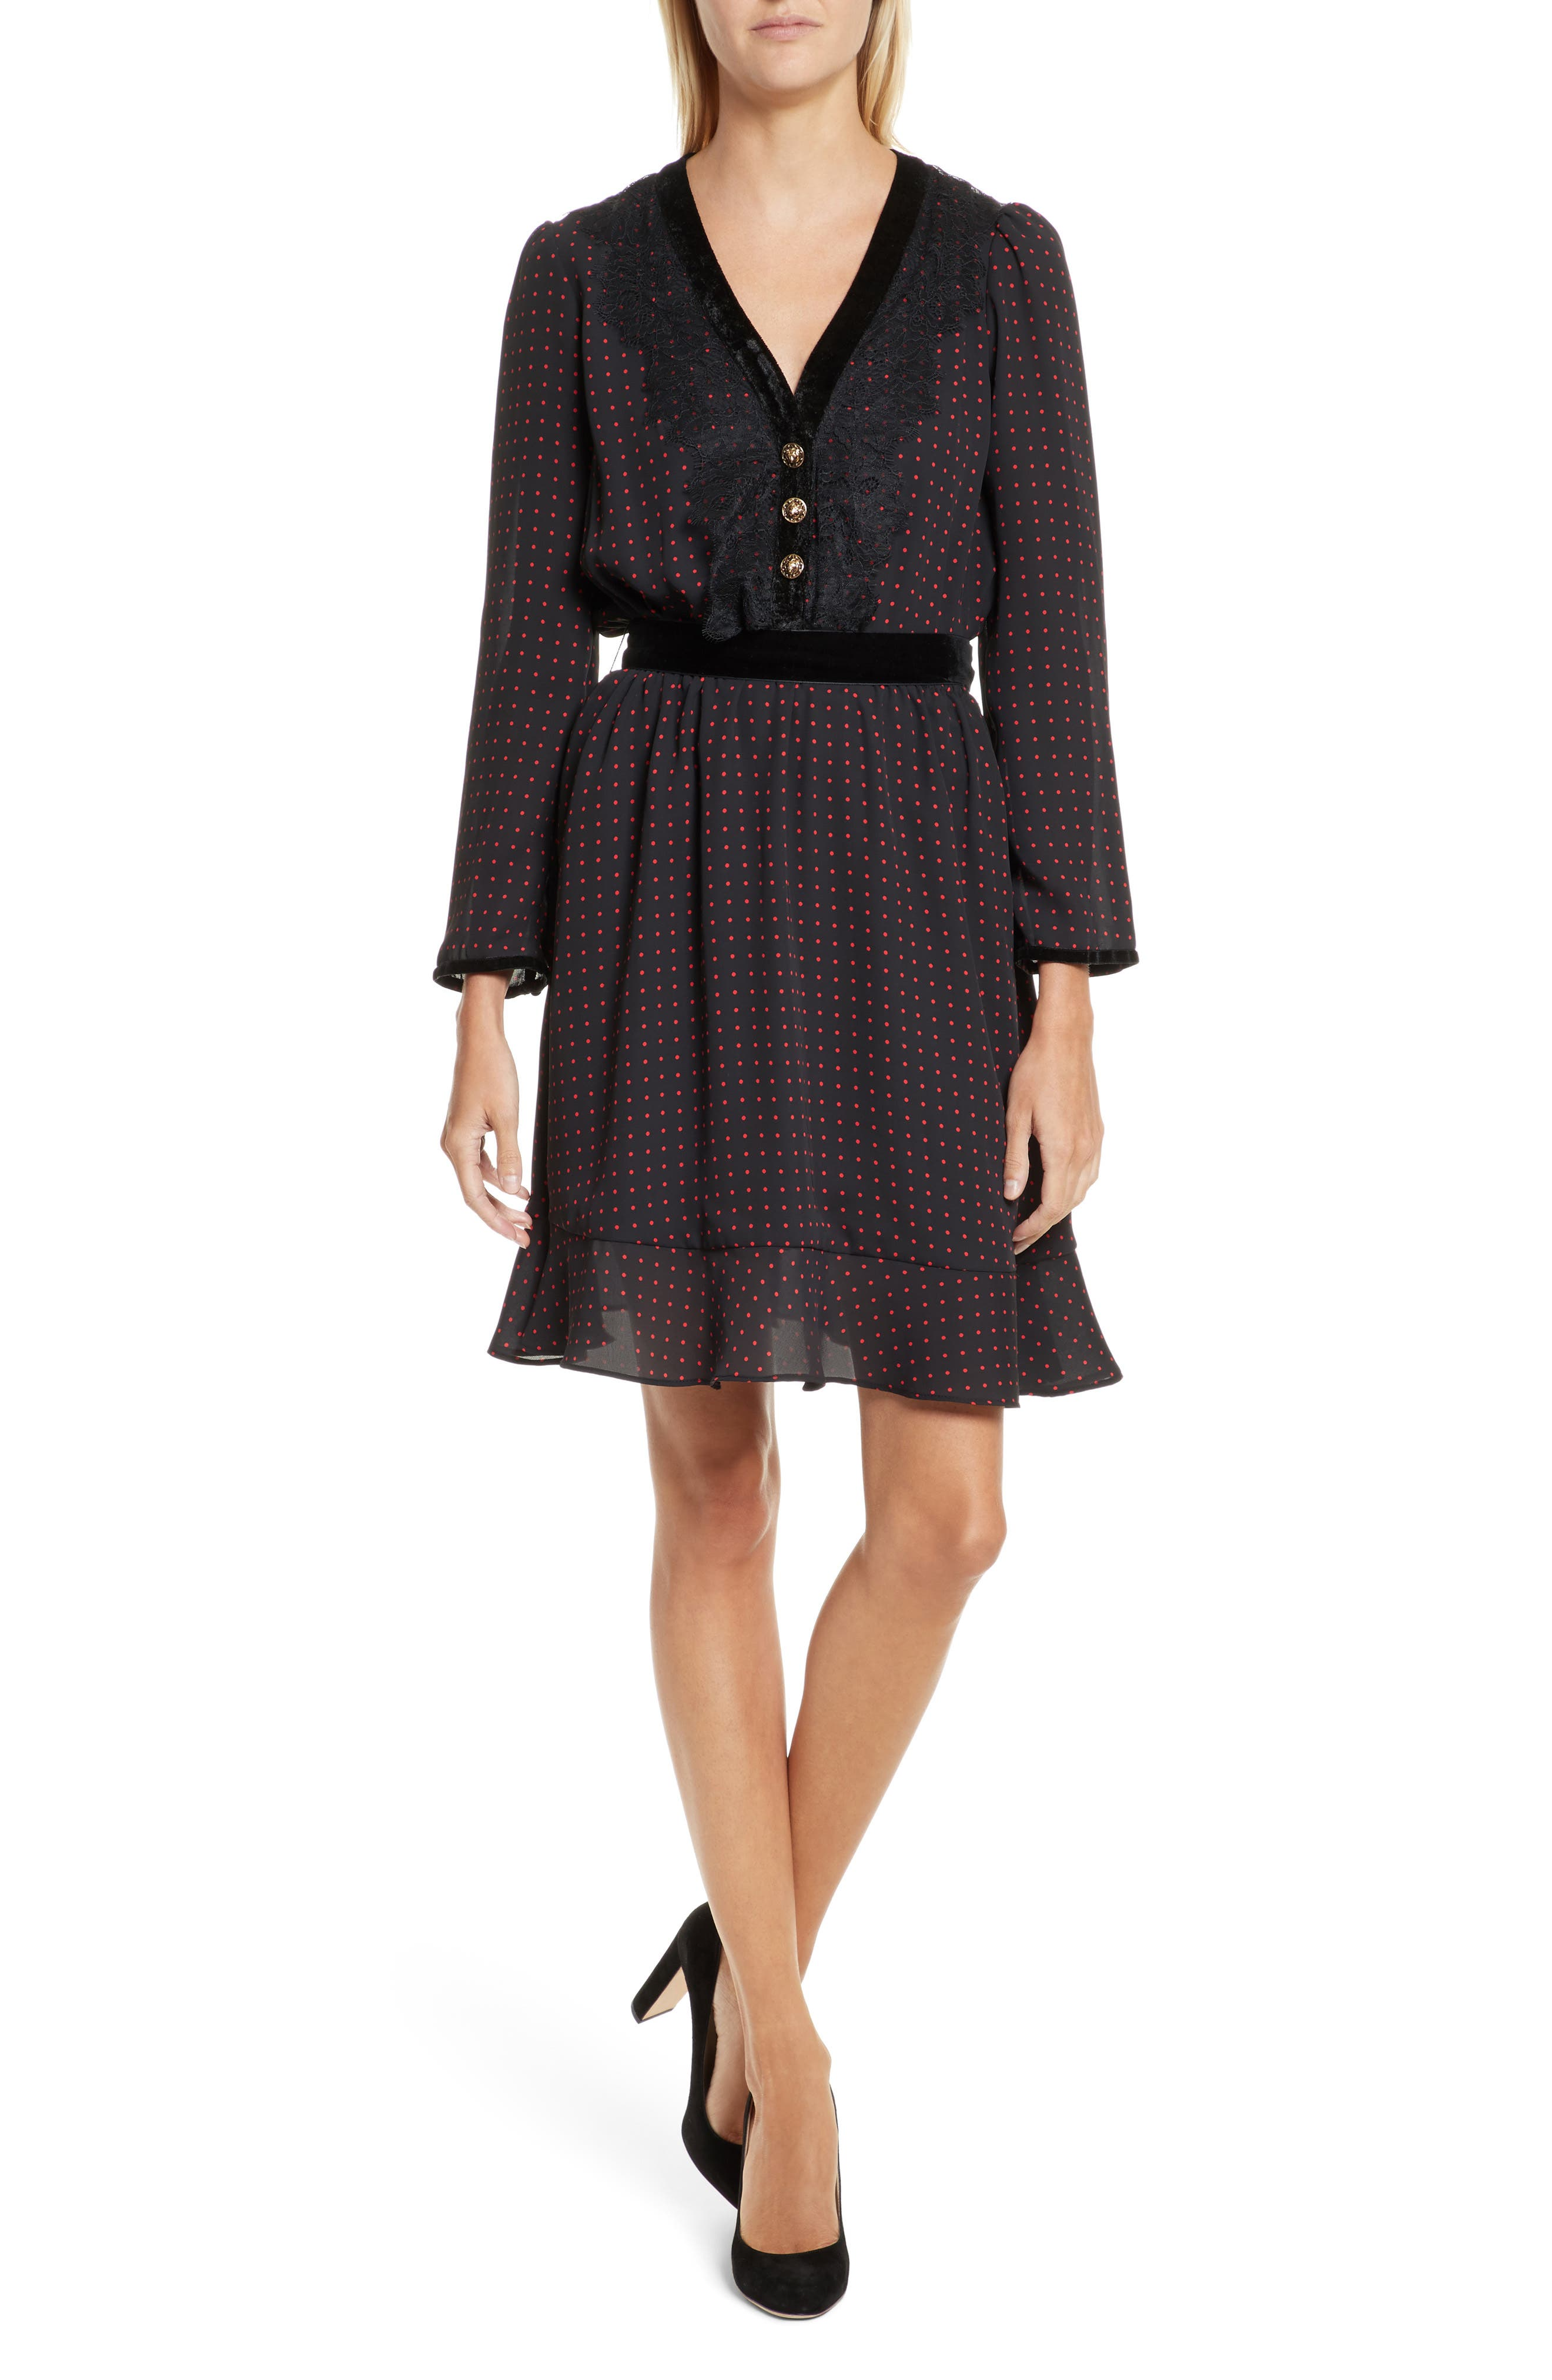 Alternate Image 1 Selected - The Kooples Lace Trim Polka Dot Print Dress